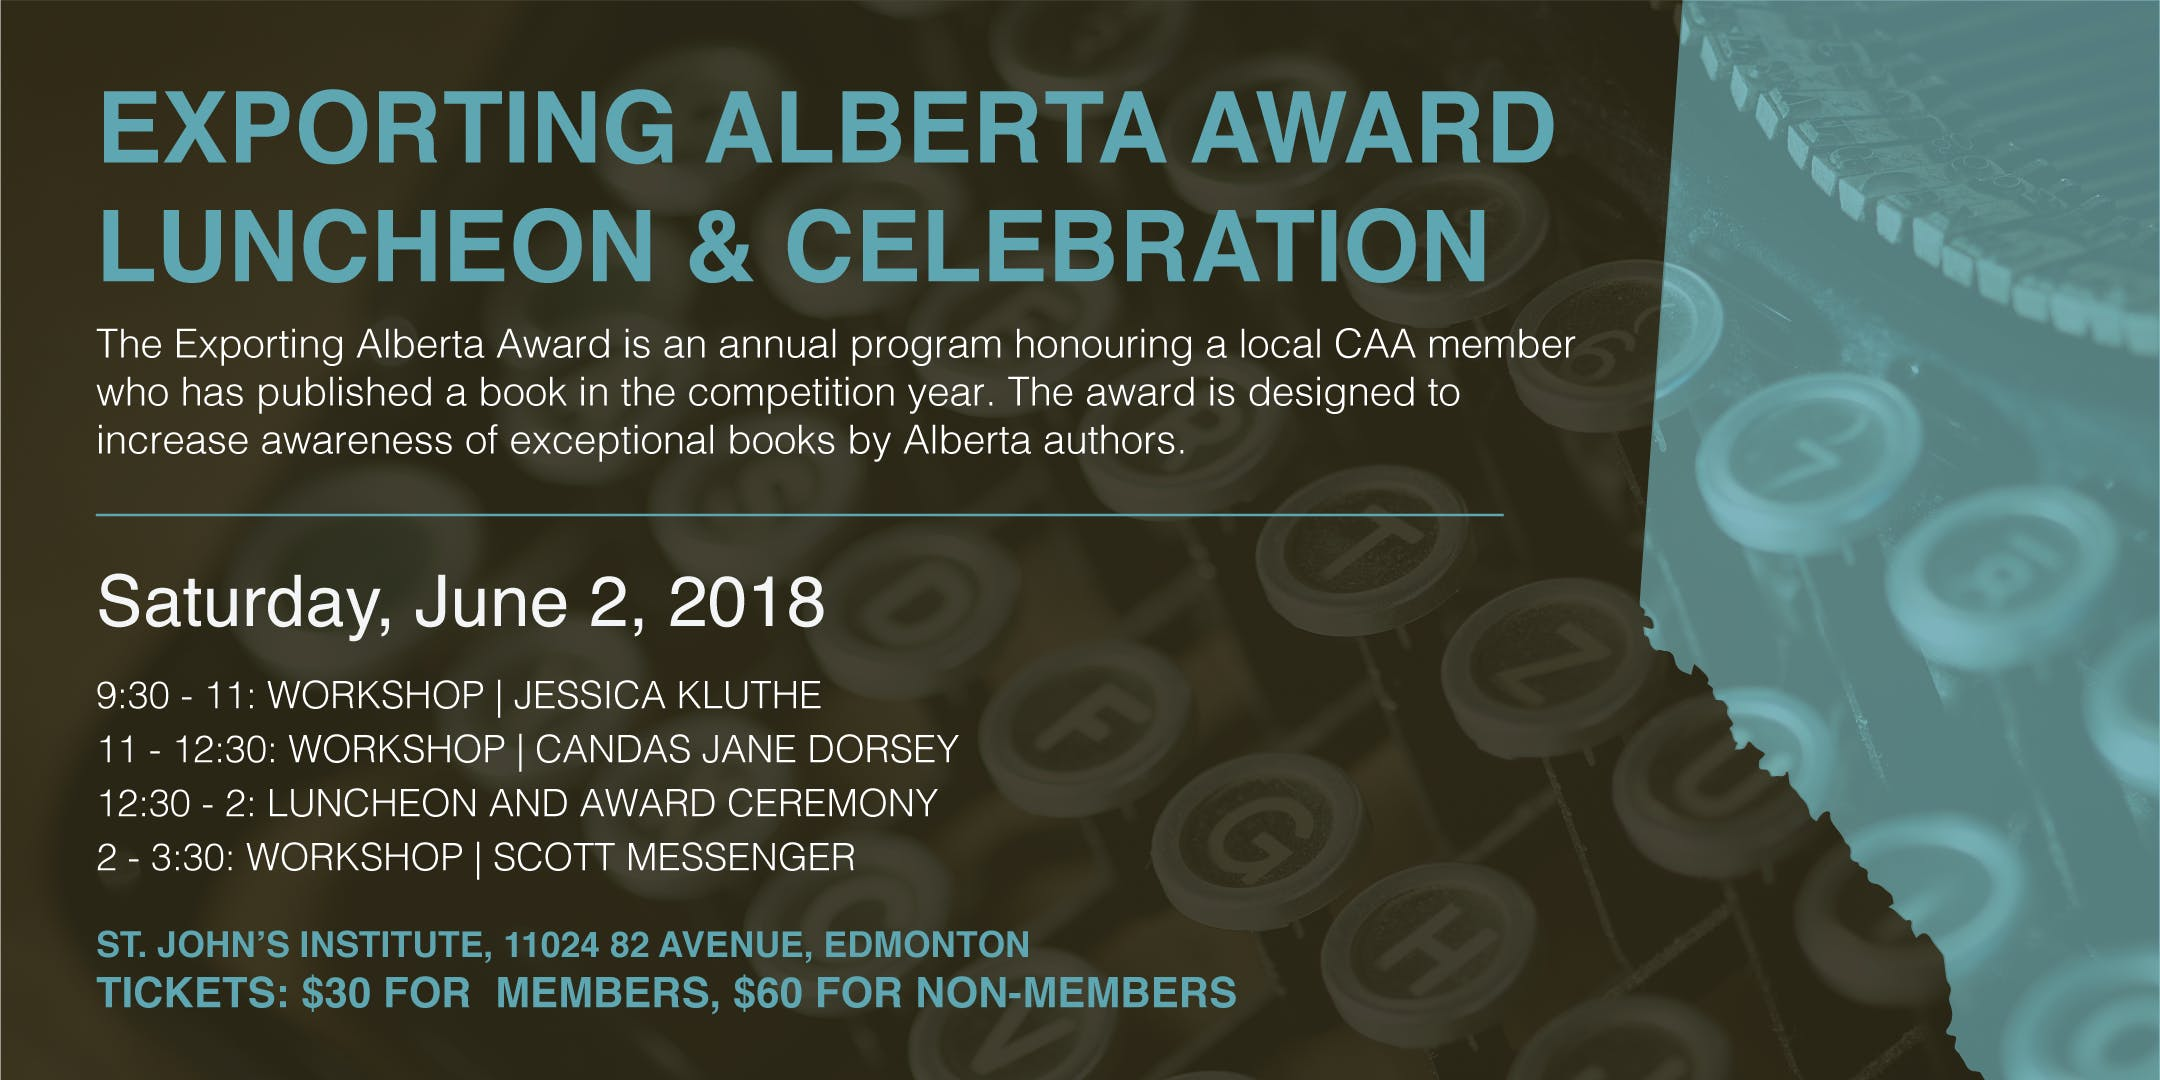 Exporting Alberta Awards Luncheon and Celebration